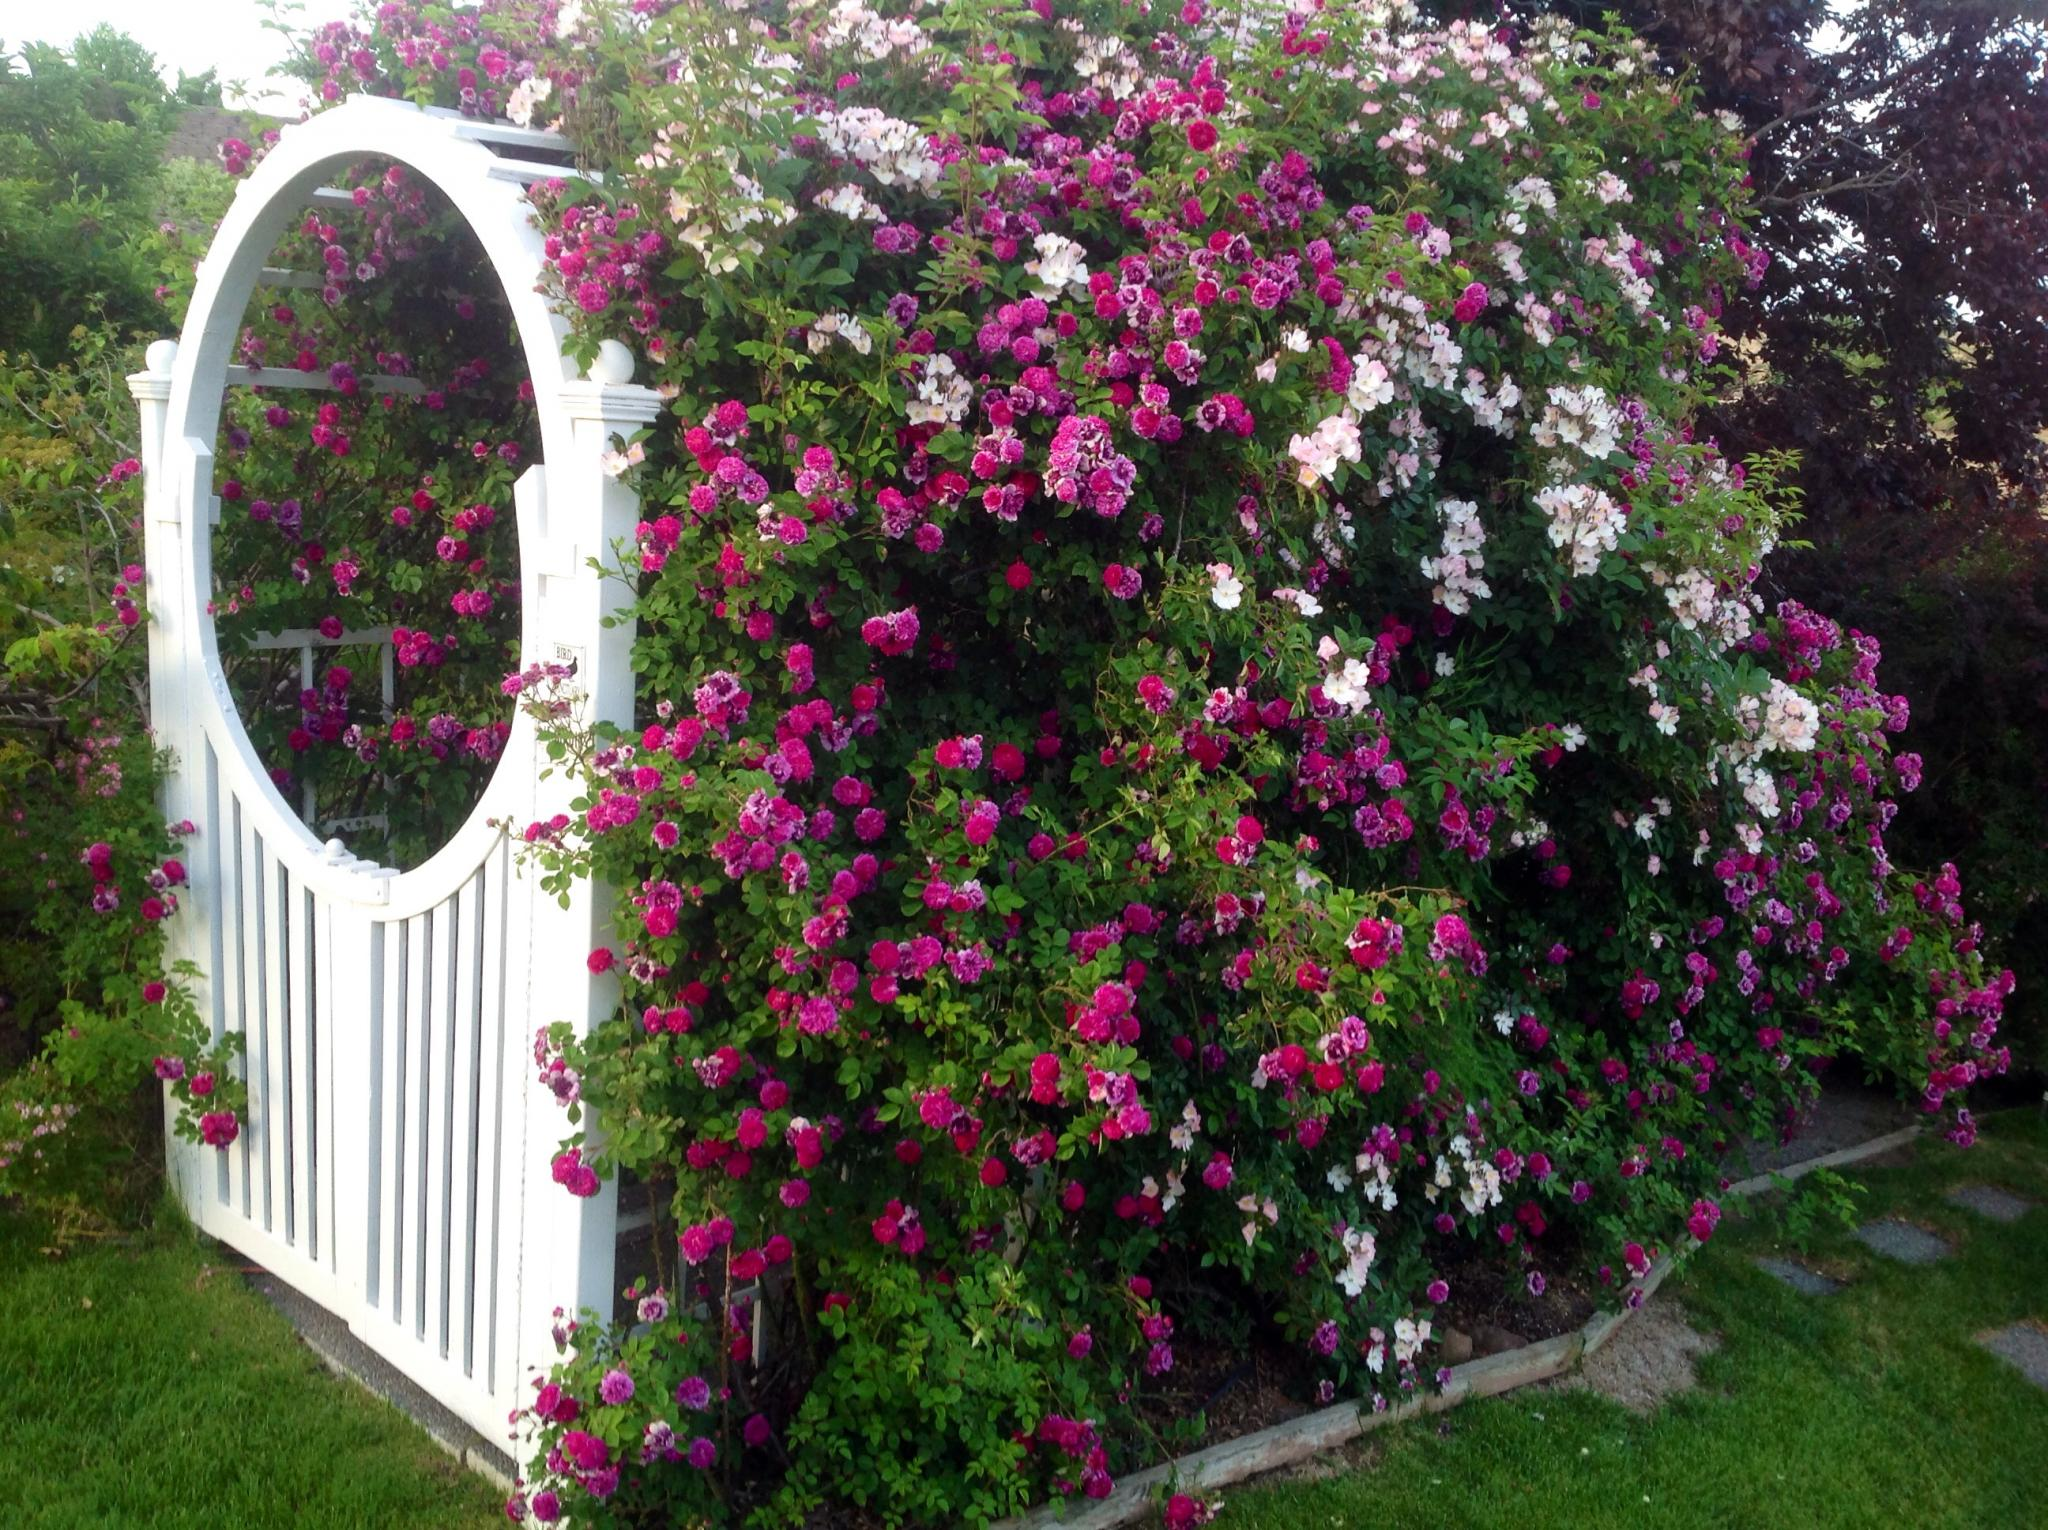 Front Yard Cottage Garden John Cabot Climbing Roses: Patty's Garden In Washington, Day 1